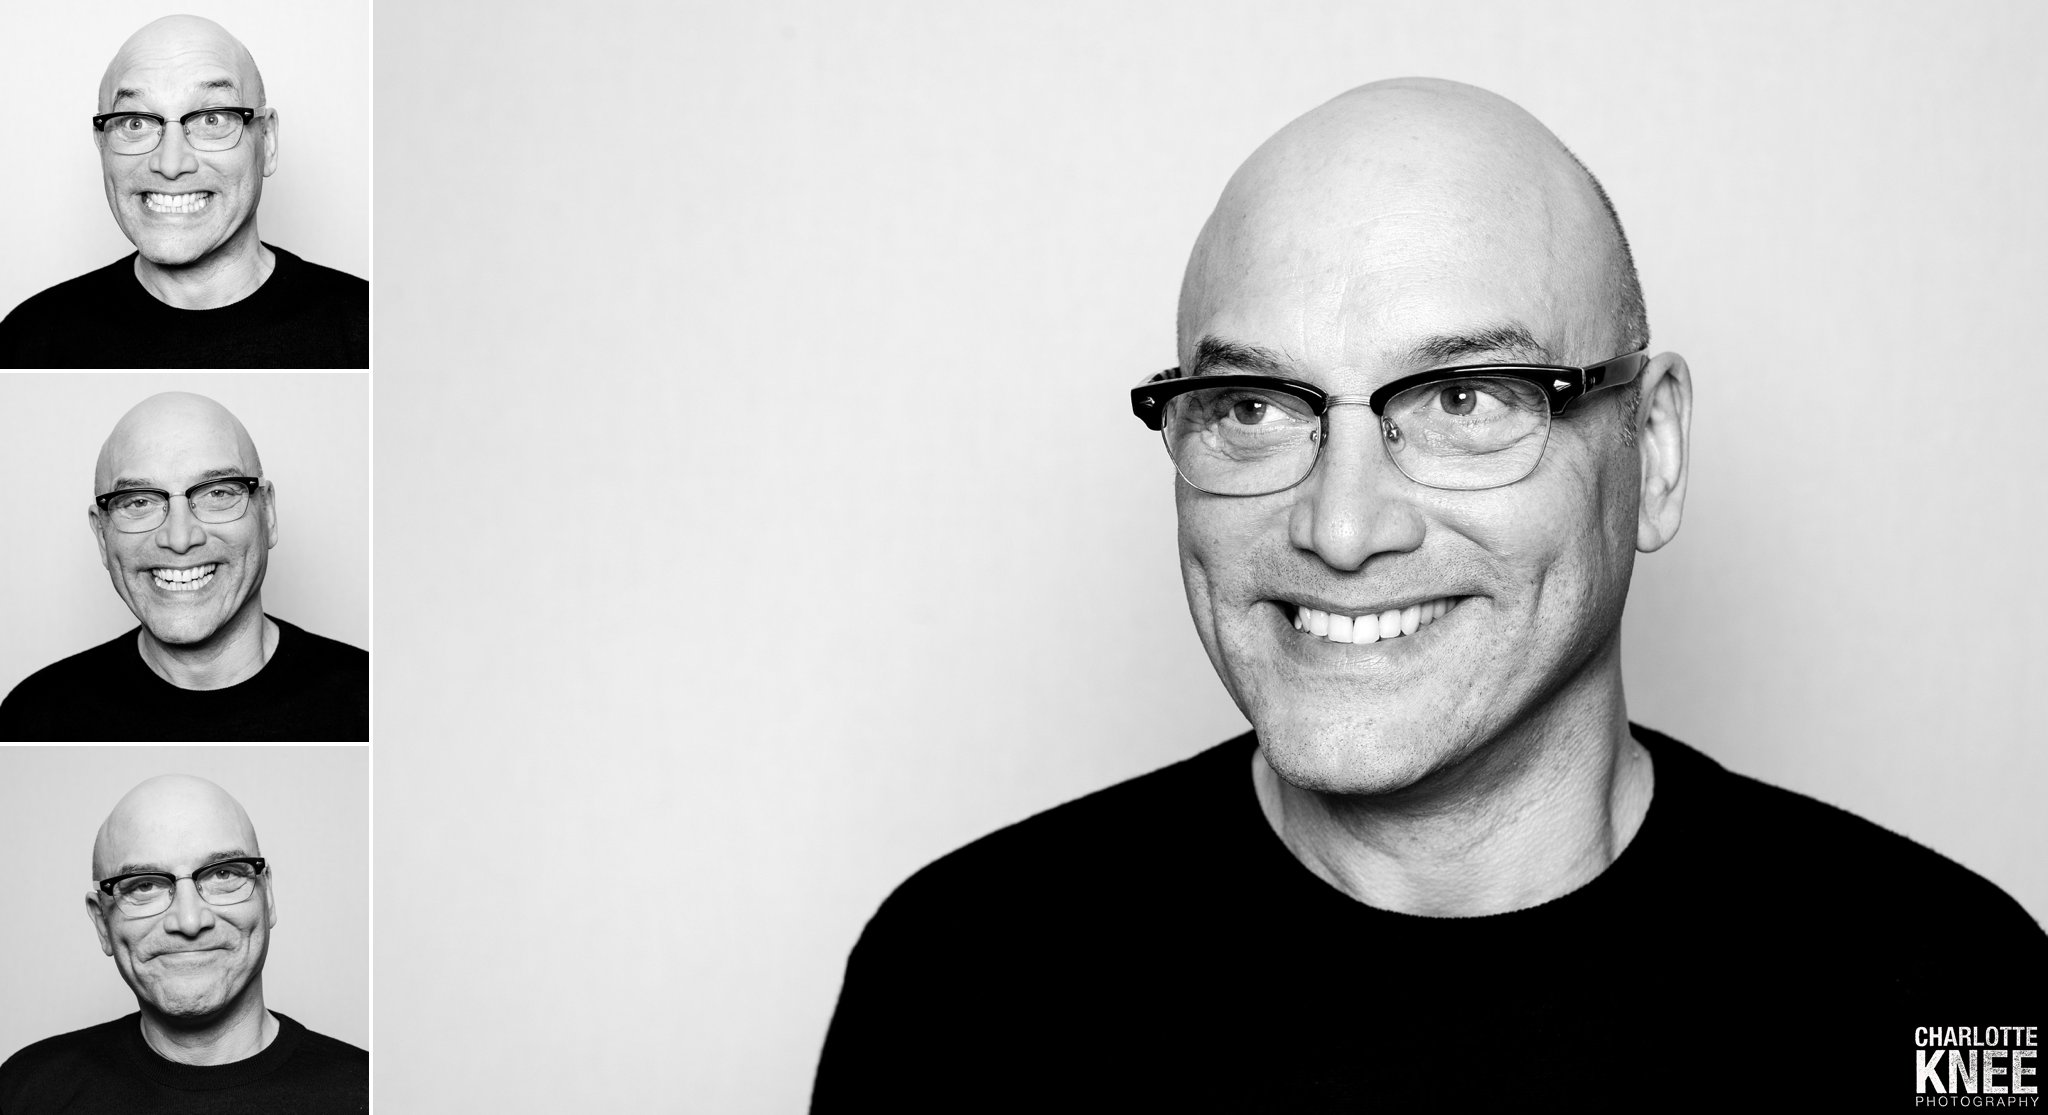 Gregg-Wallace-Talent-Headshot-Charlotte-Knee-Photography.jpg